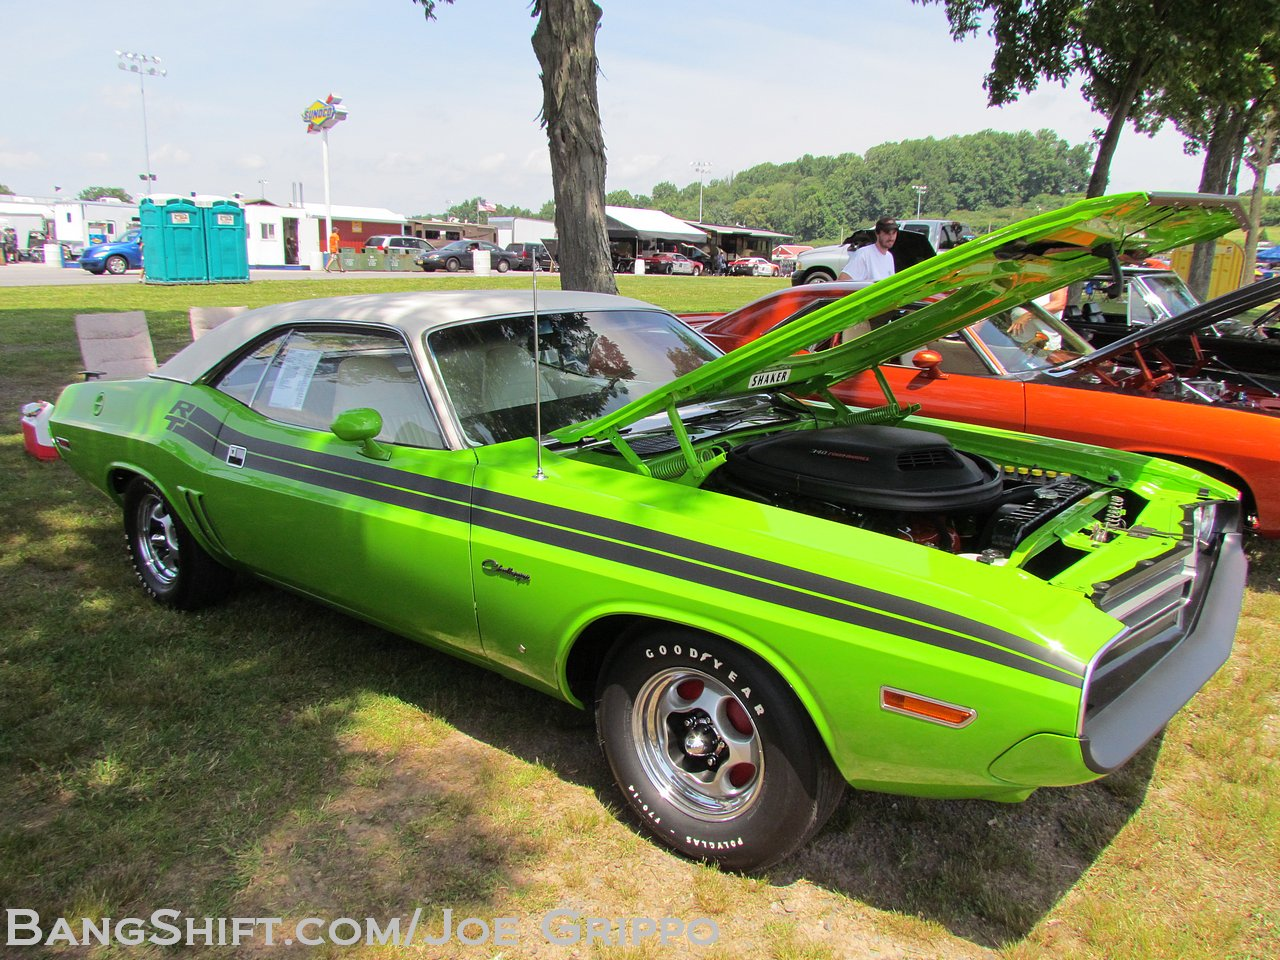 Gallery: Mega Mopar Action Weekend 2013 Maple Grove – Car Show And Strip Action!